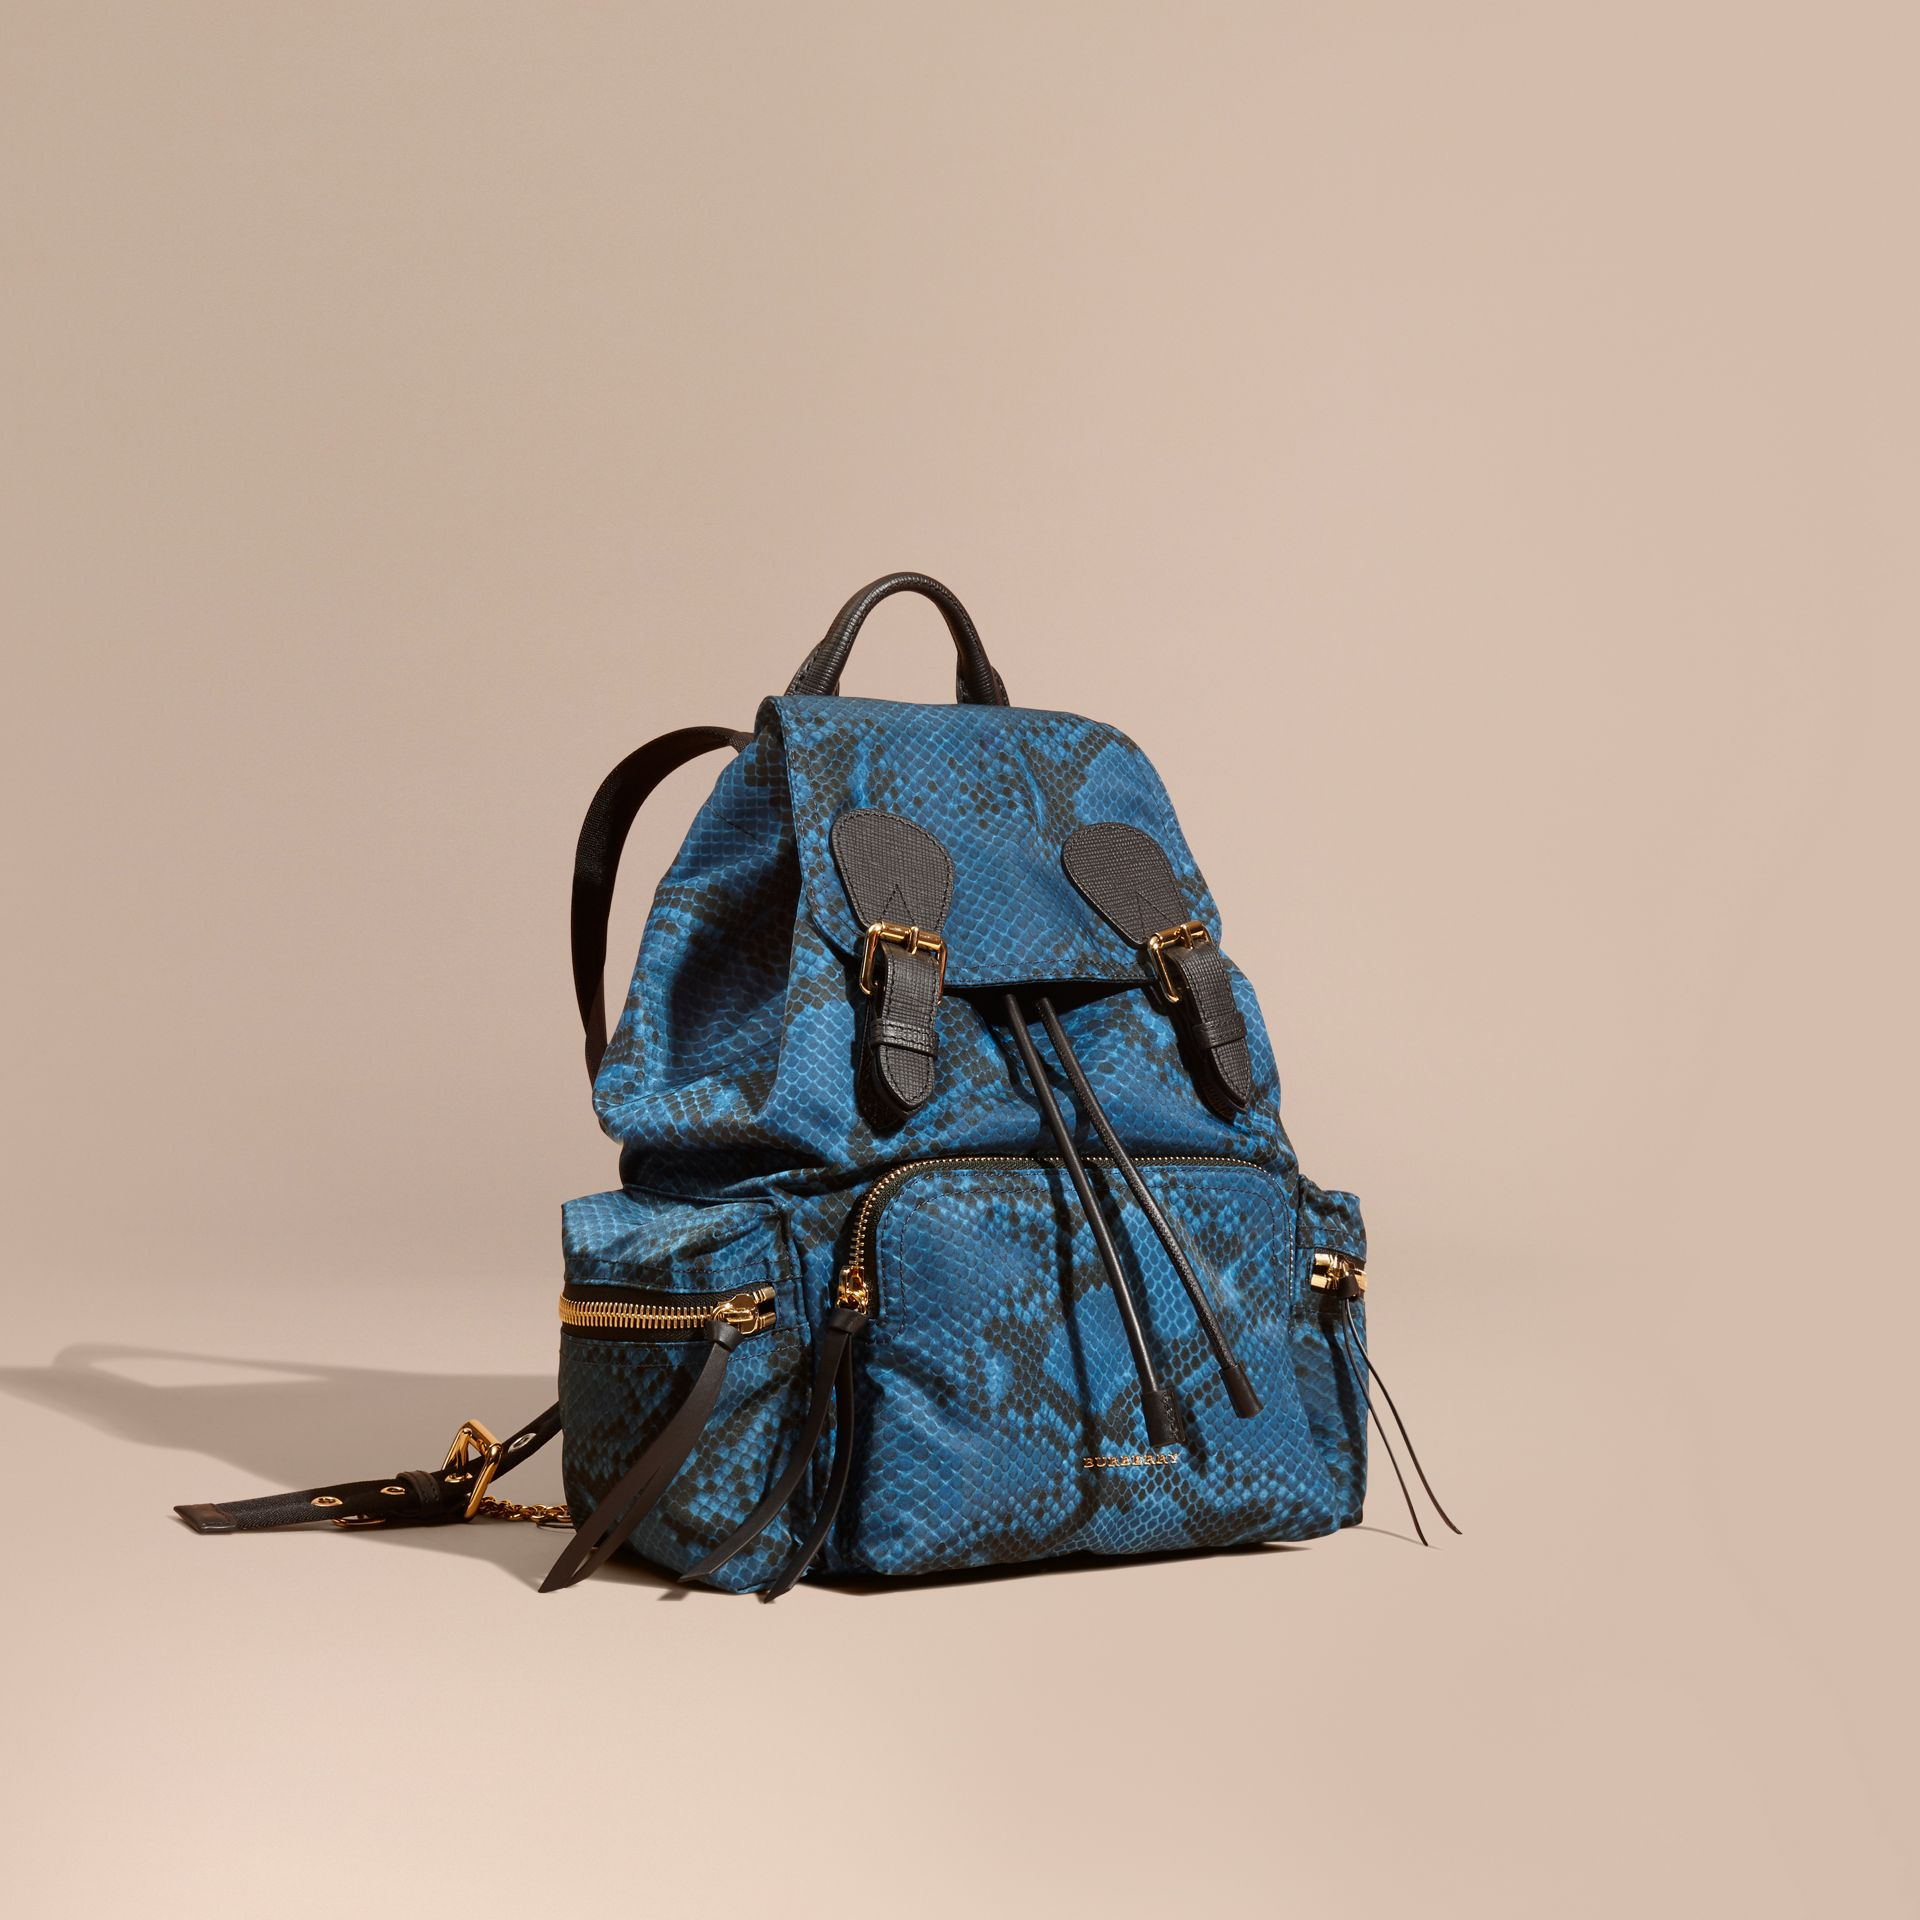 Sac The Rucksack medium en nylon à imprimé python et cuir Bleu - photo de la galerie 1